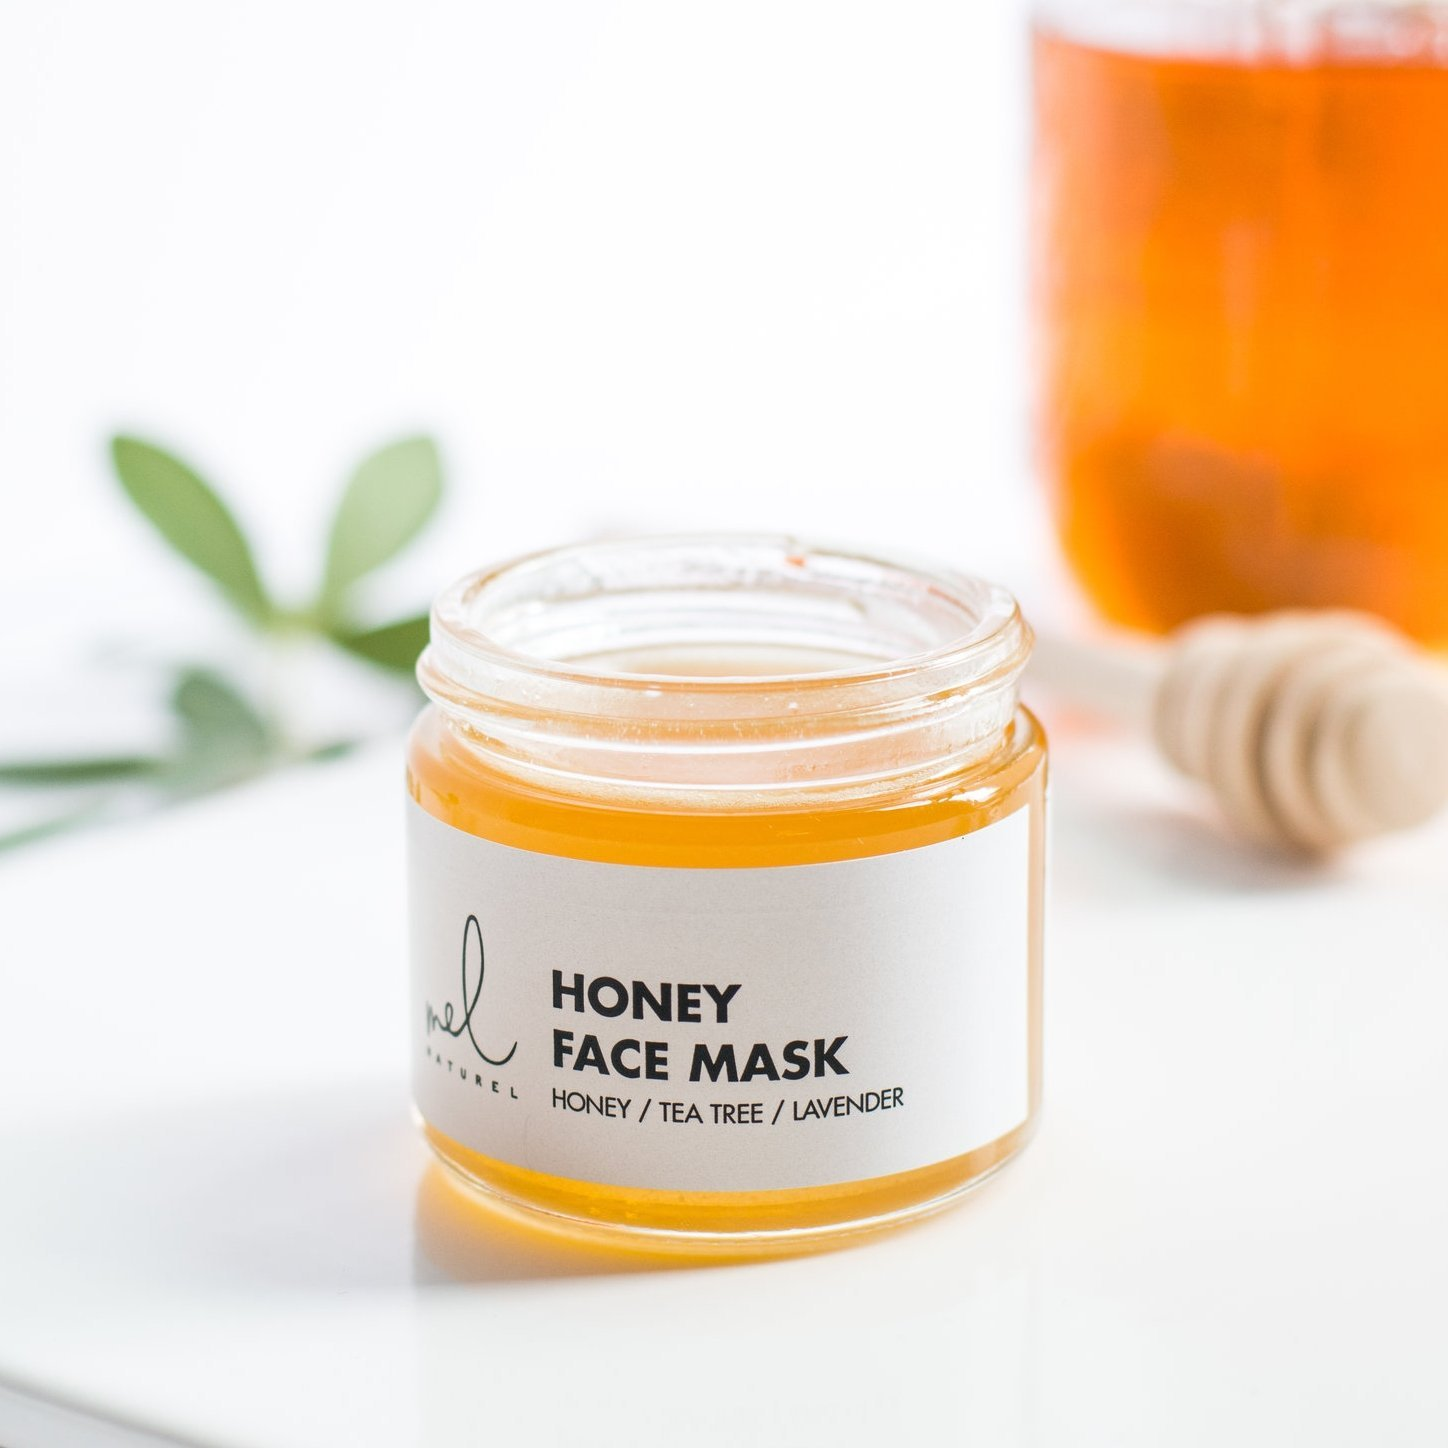 Melnaturel - Honey Face Mask by Melnaturel